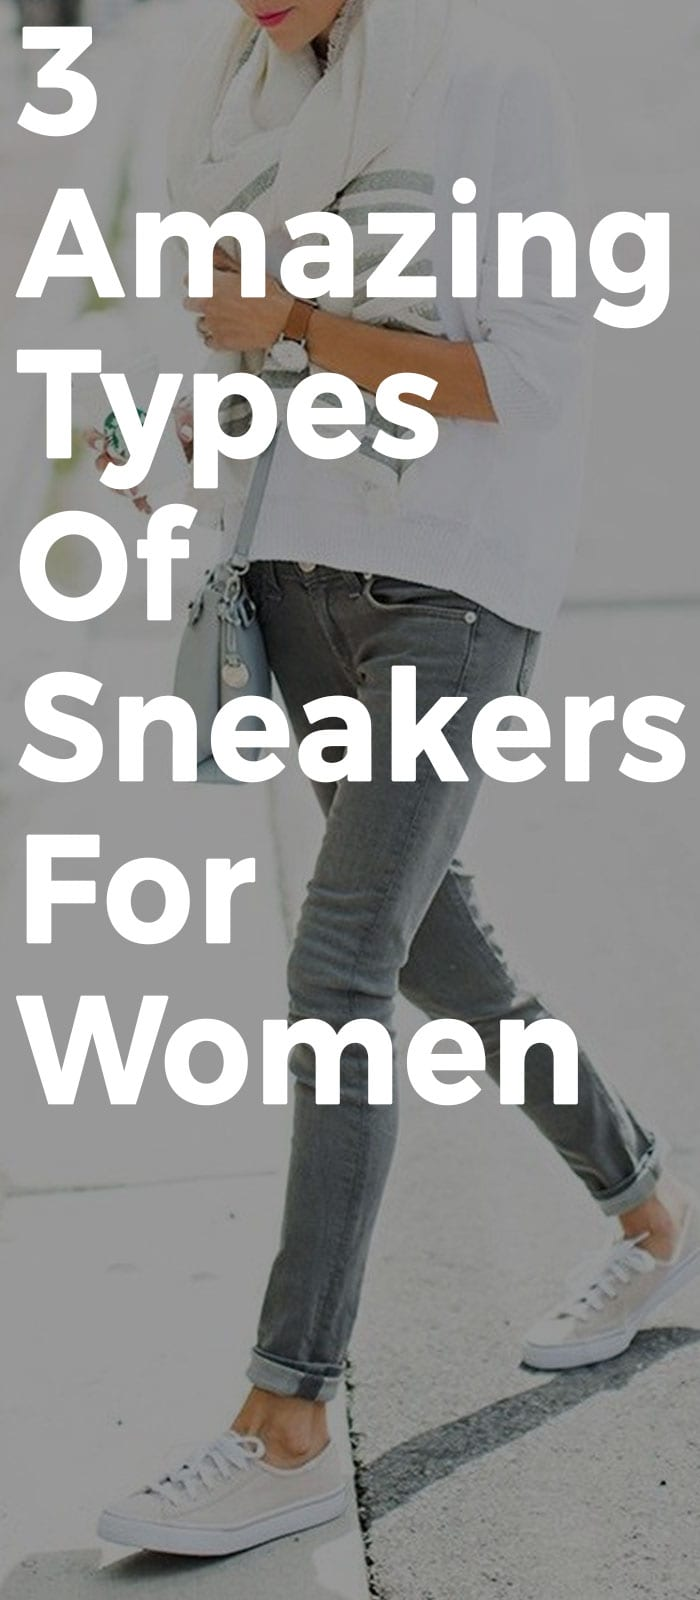 3 Amazing Types Of Sneakers Inspired By Street Style!